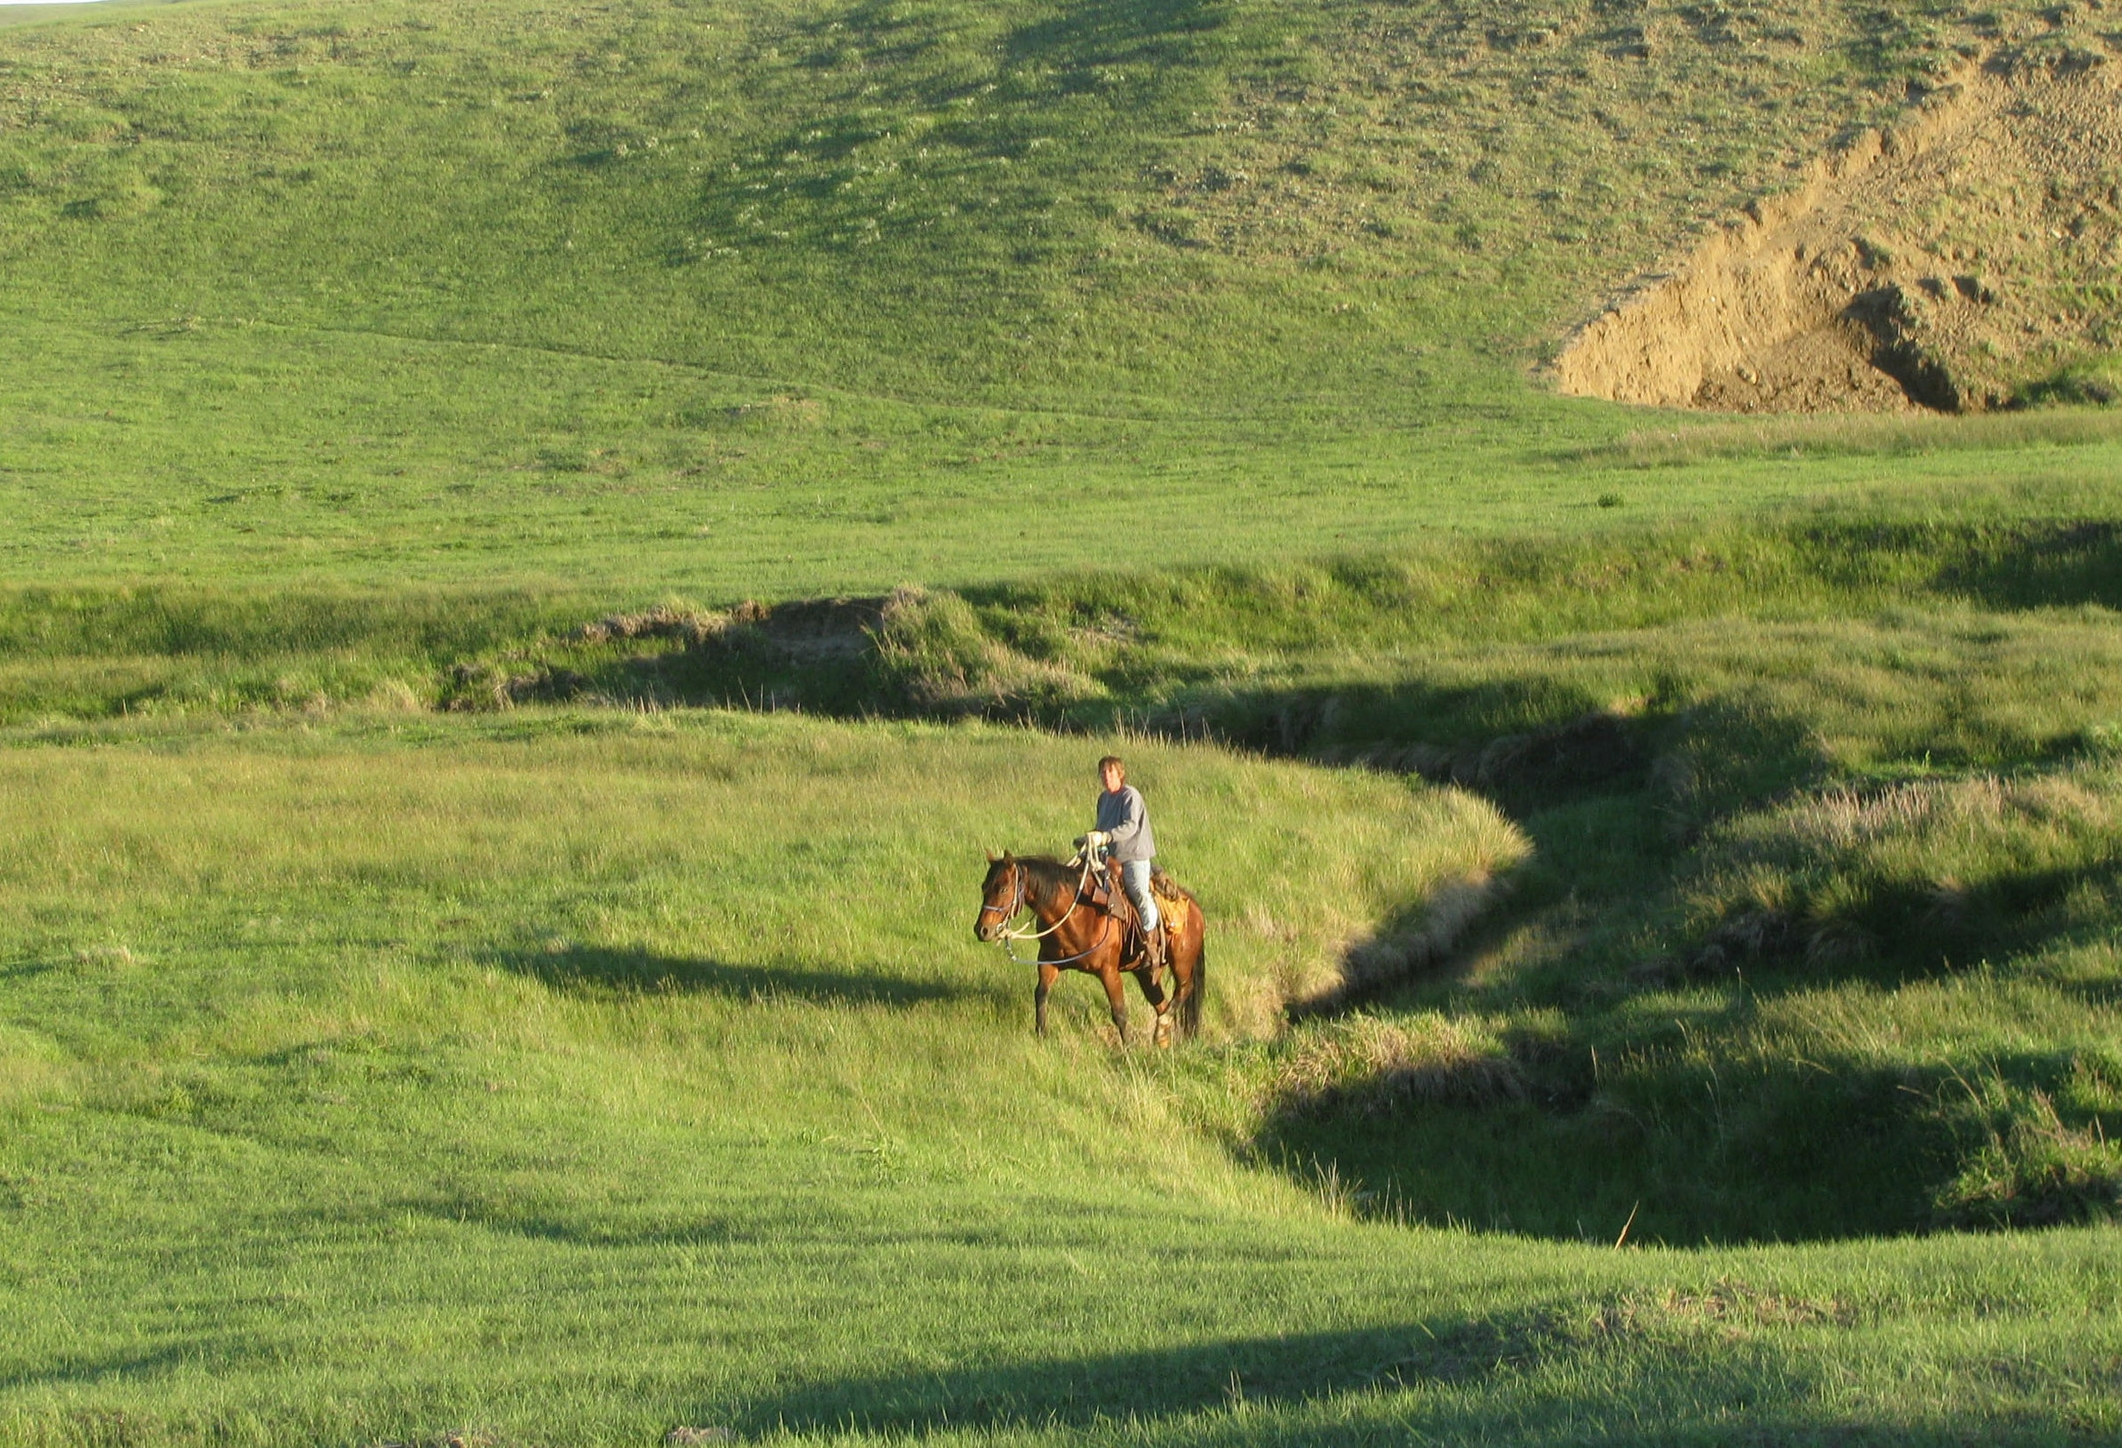 A Land of Grass Ranch, USDA and Montana State University